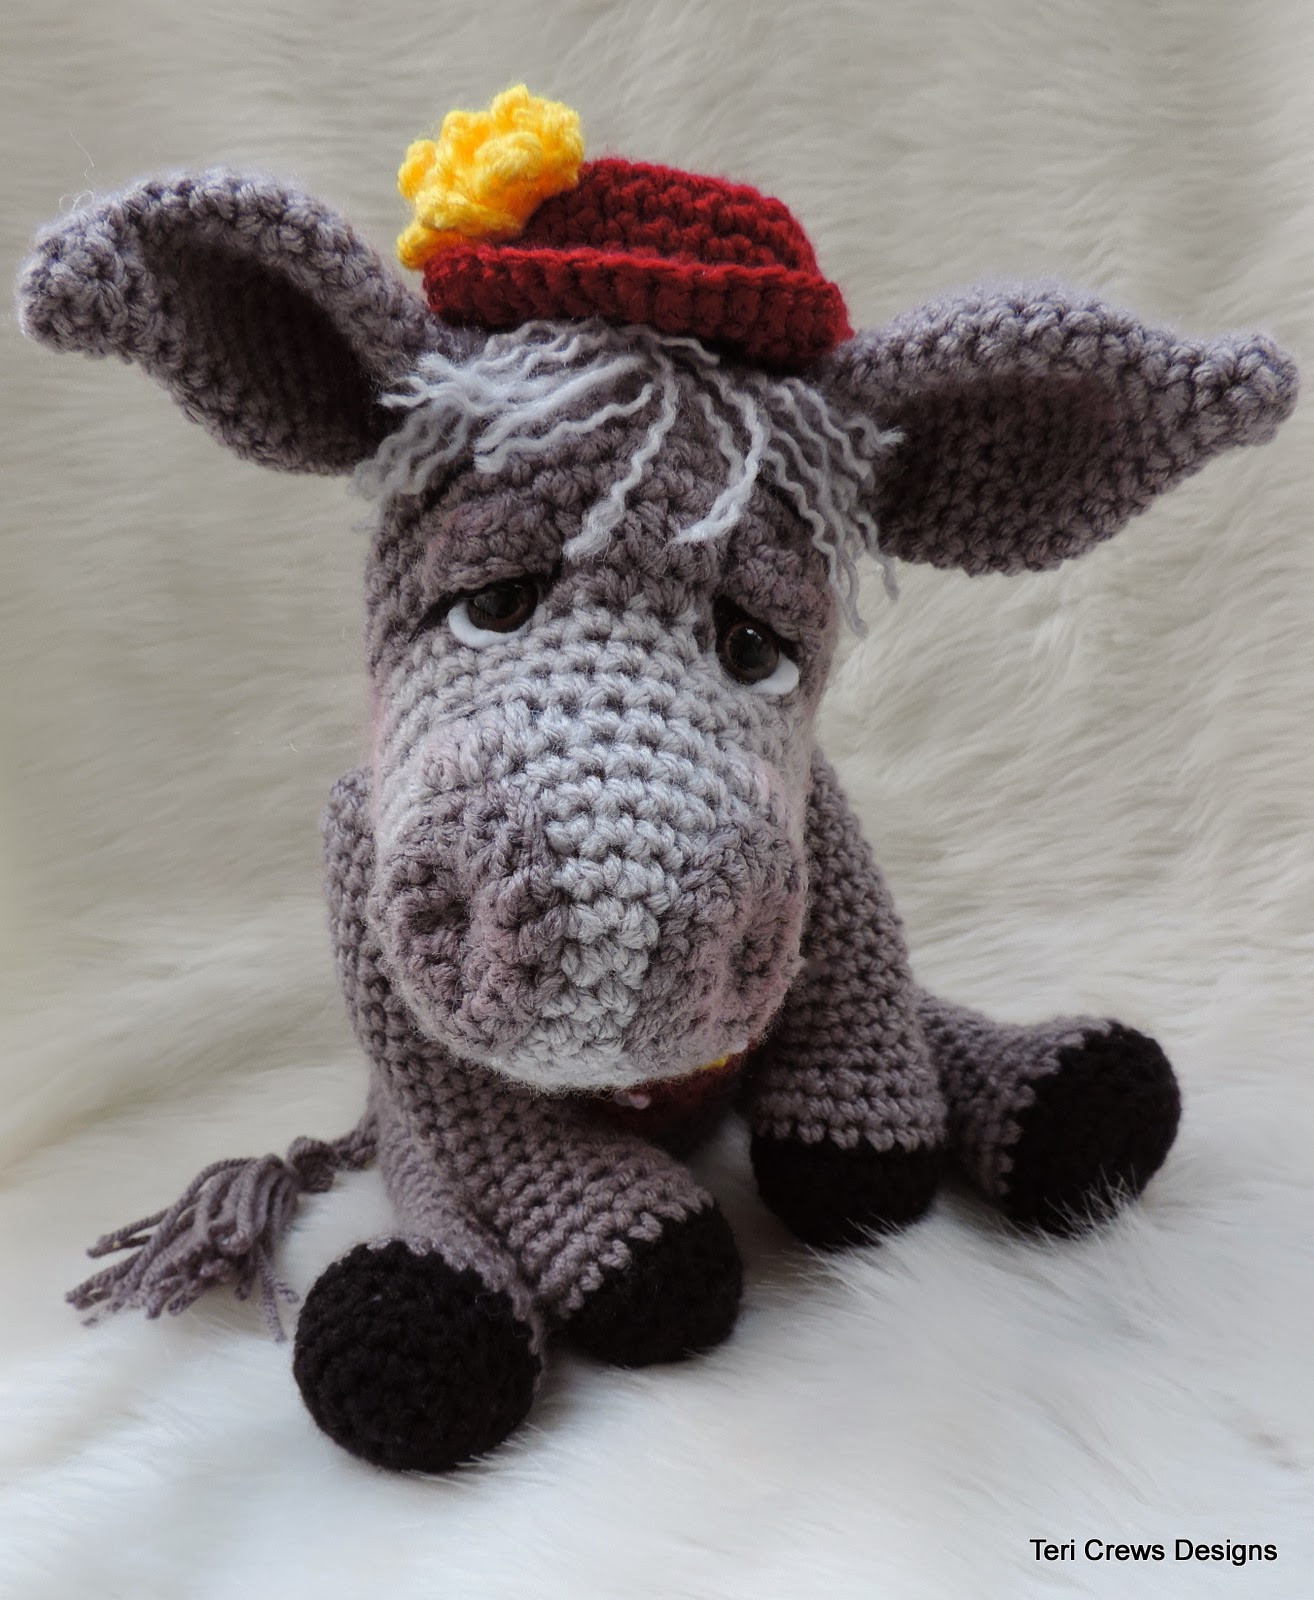 New Crochet Patterns Awesome Teri S Blog New Donkey Crochet Pattern Of Perfect 50 Ideas New Crochet Patterns